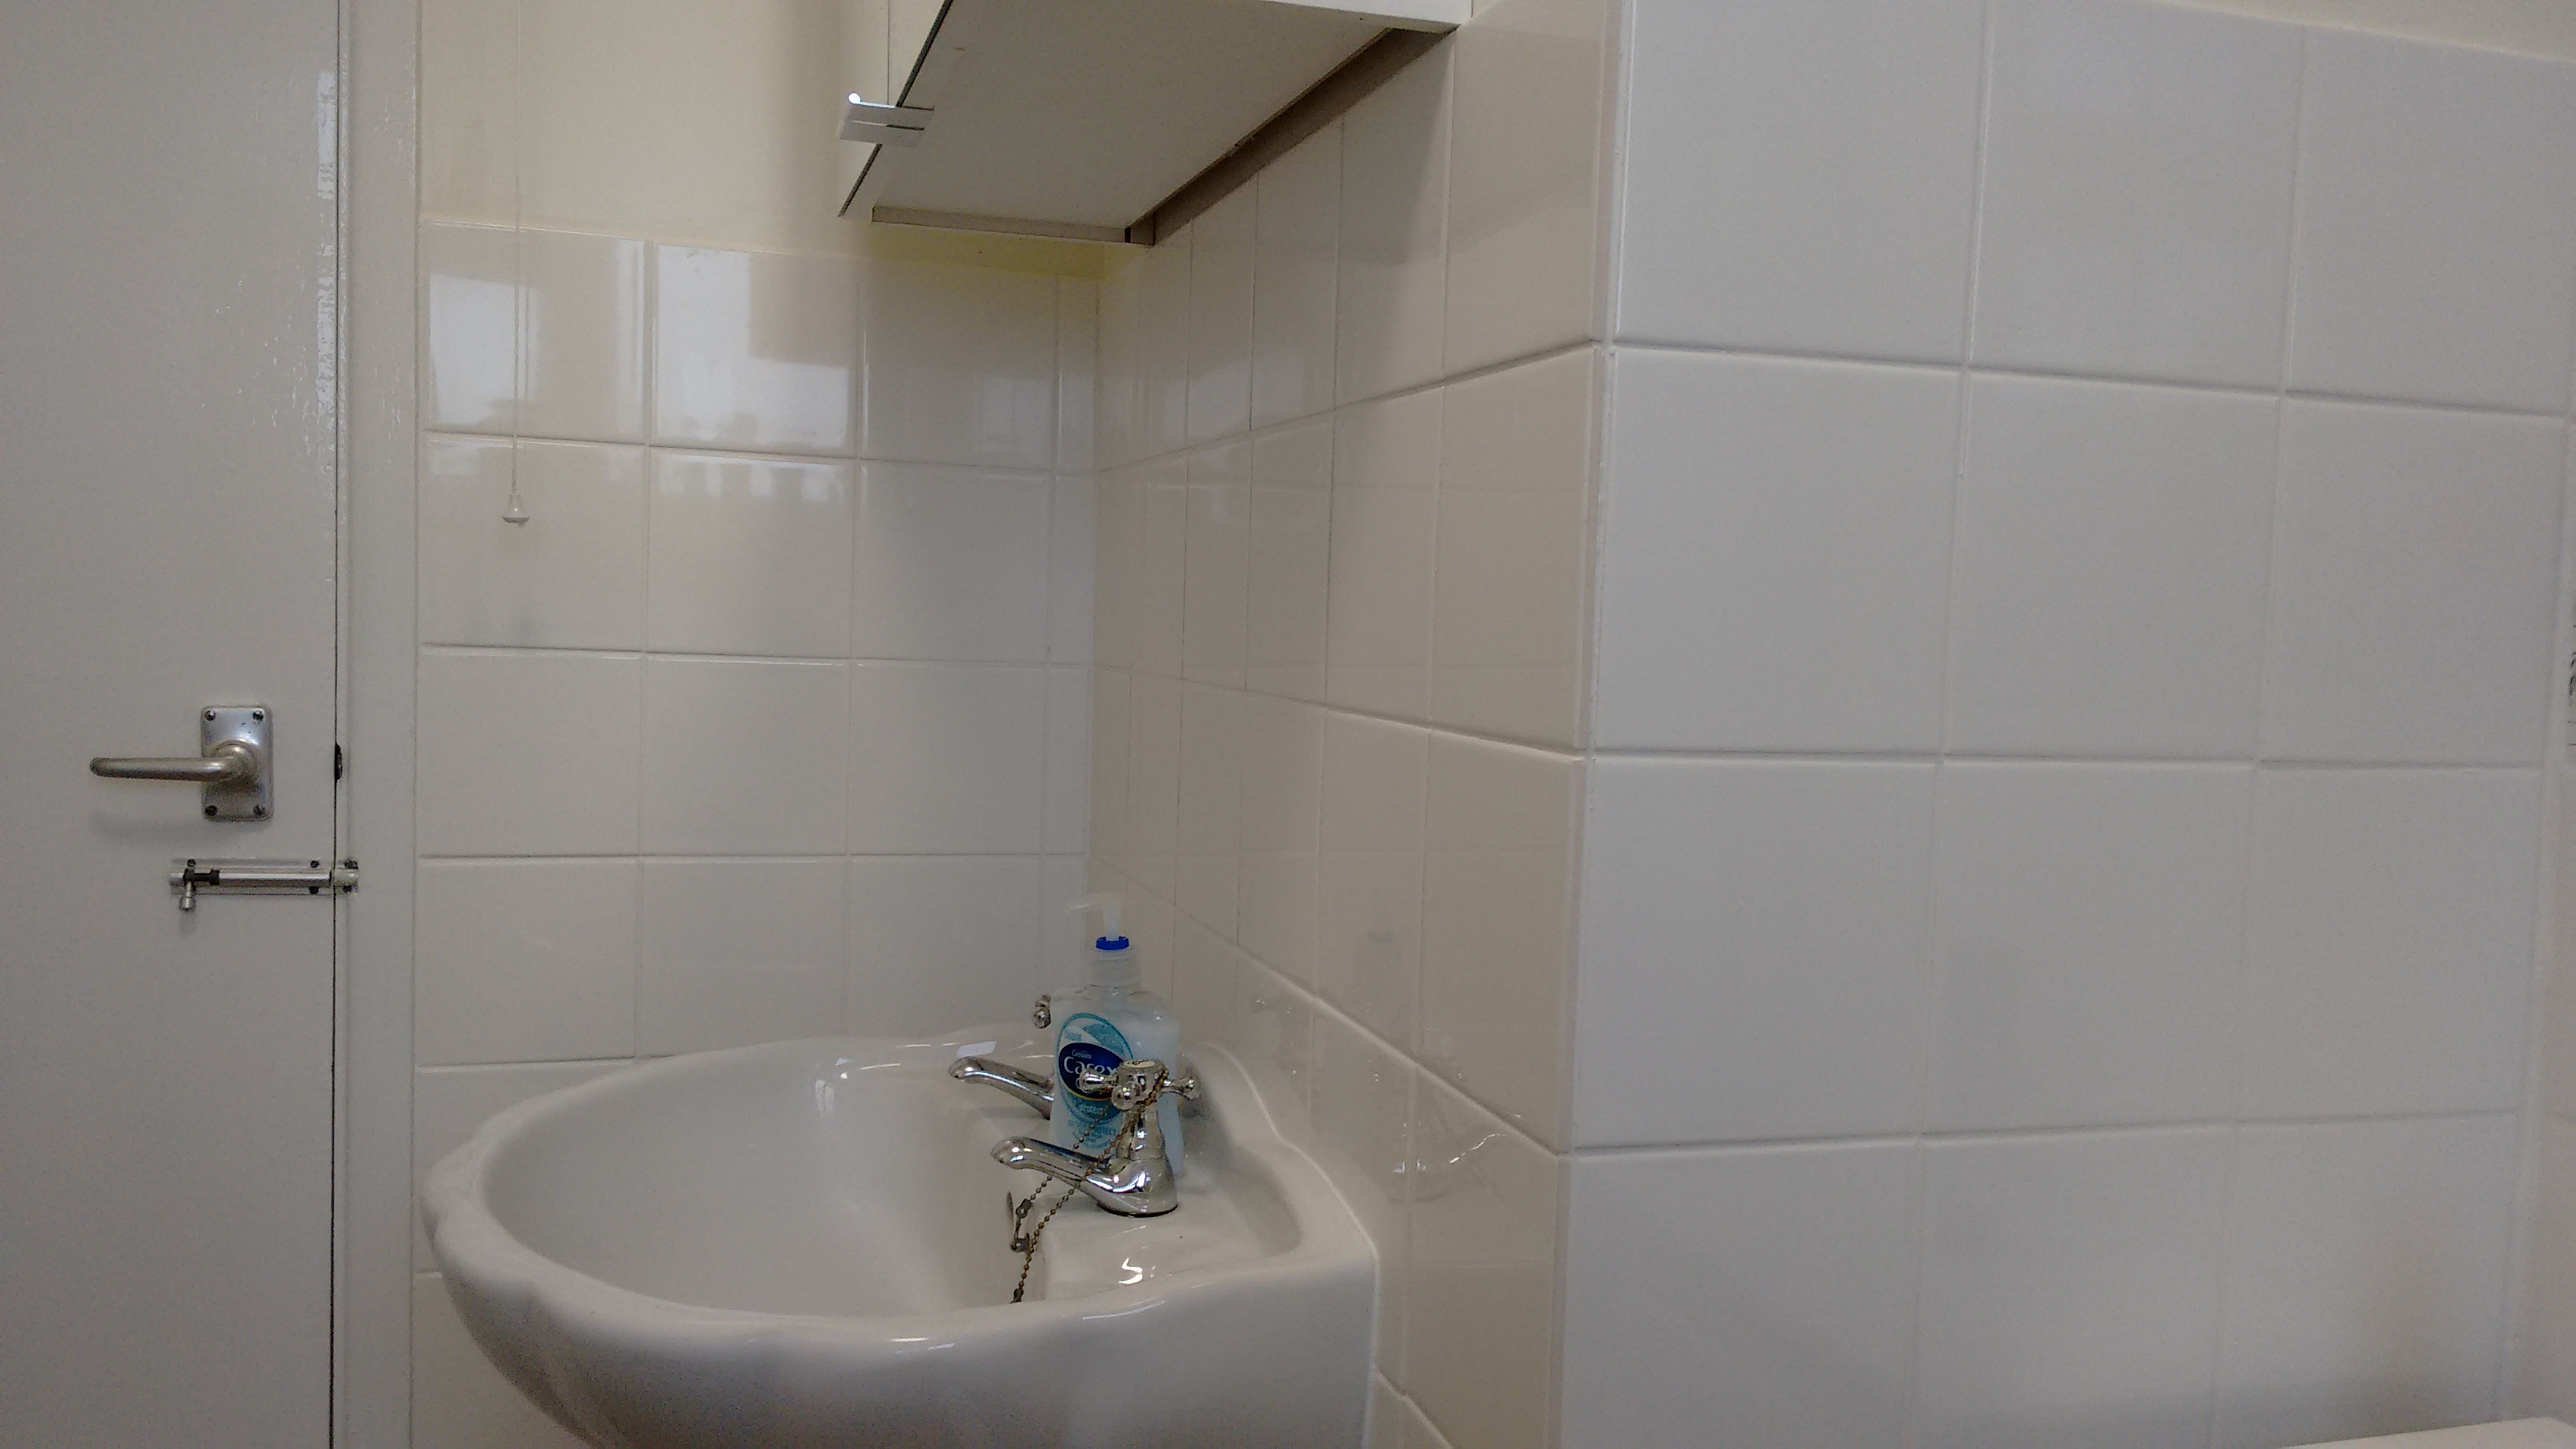 New tiles, grout and seals